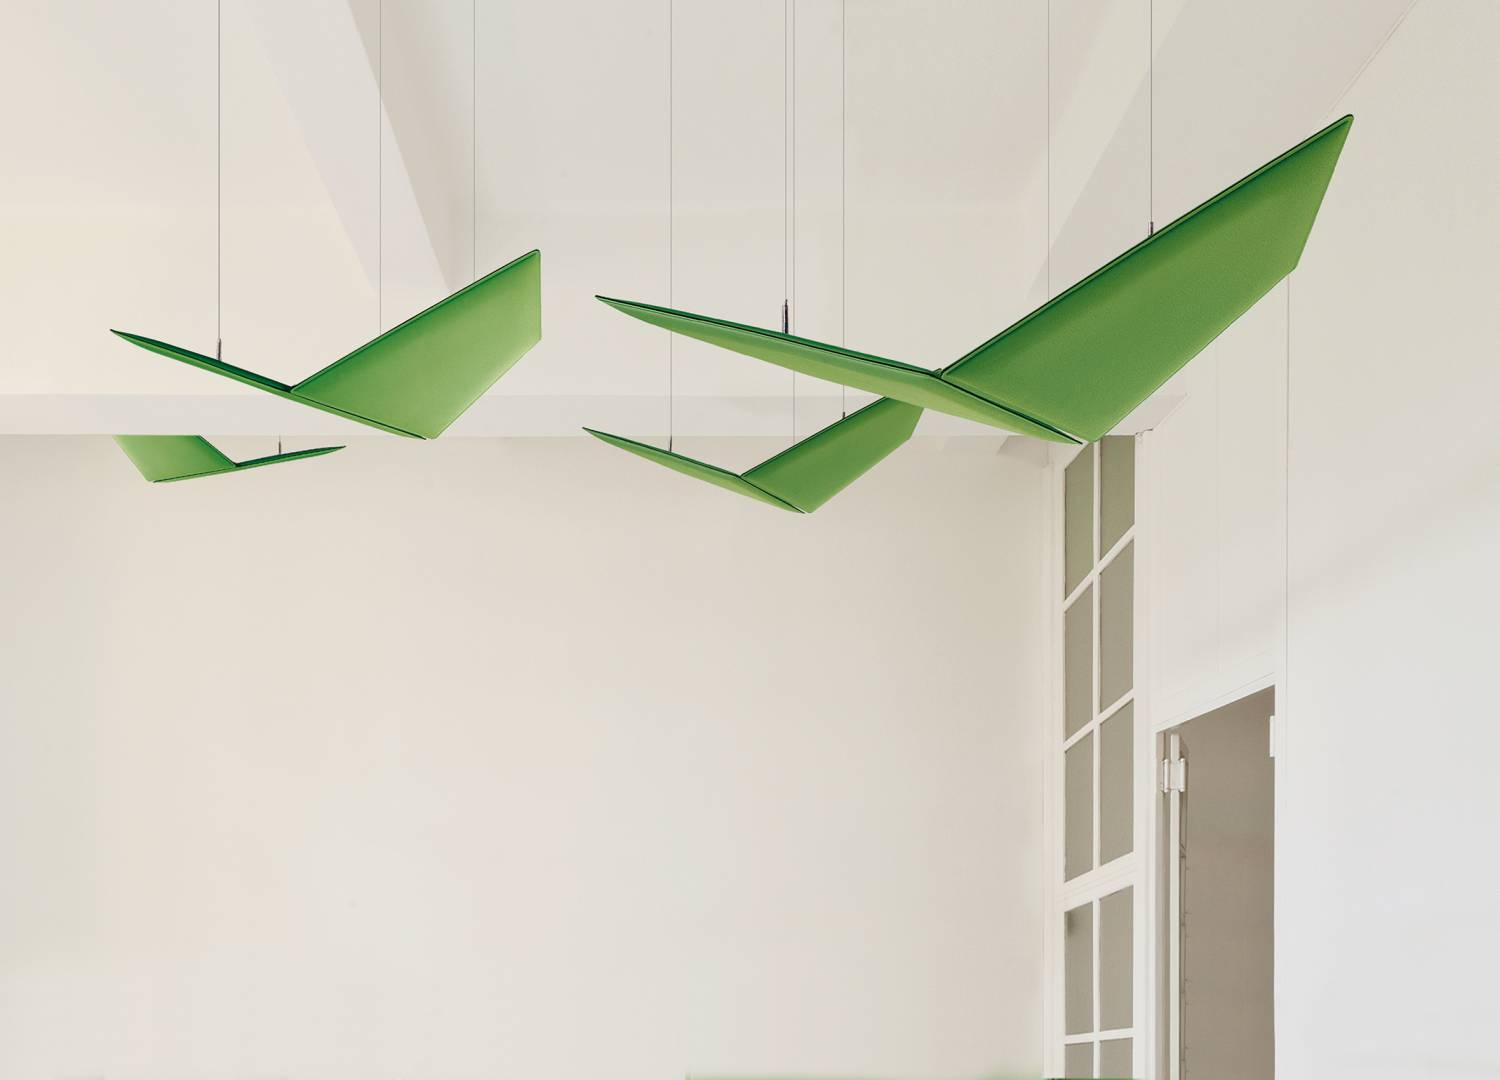 V-Flap-Ceiling-Suspended-Acoustic-Panels-Green